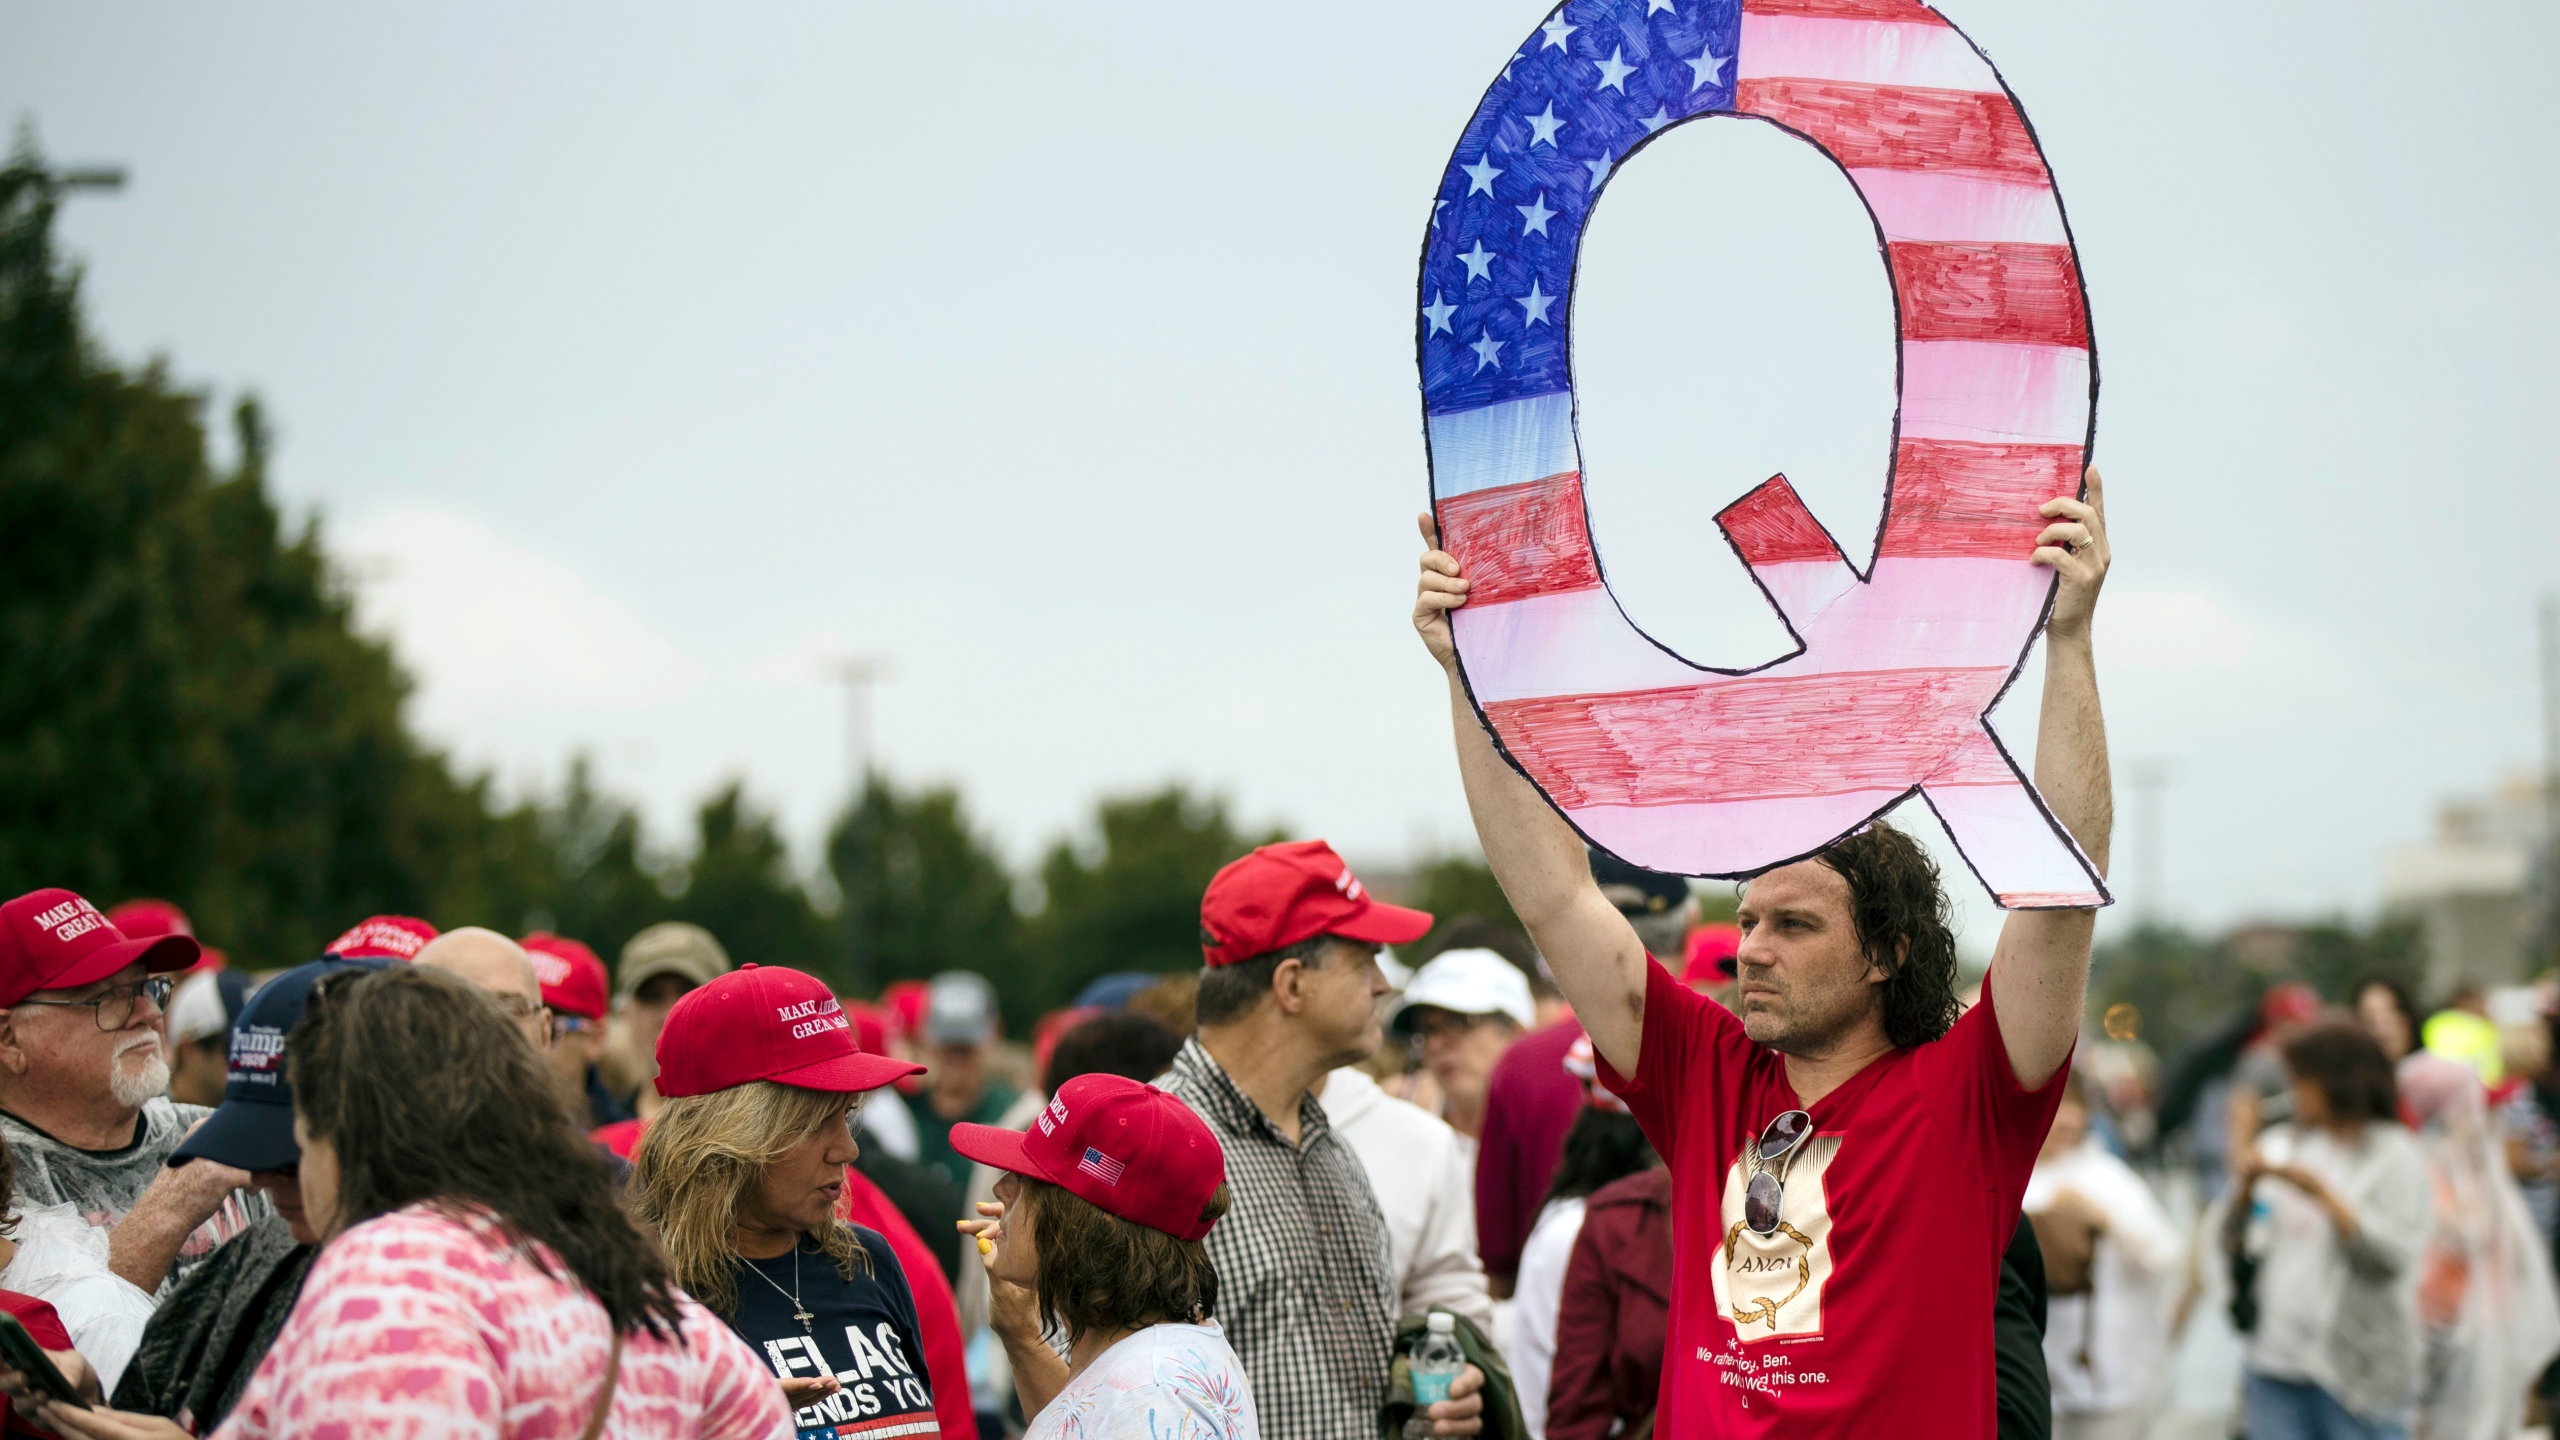 In this Aug. 2, 2018, file photo, a protester holding a Q sign waits in line with others to enter a campaign rally with President Donald Trump in Wilkes-Barre, Pa. (Matt Rourke/Associated Press)